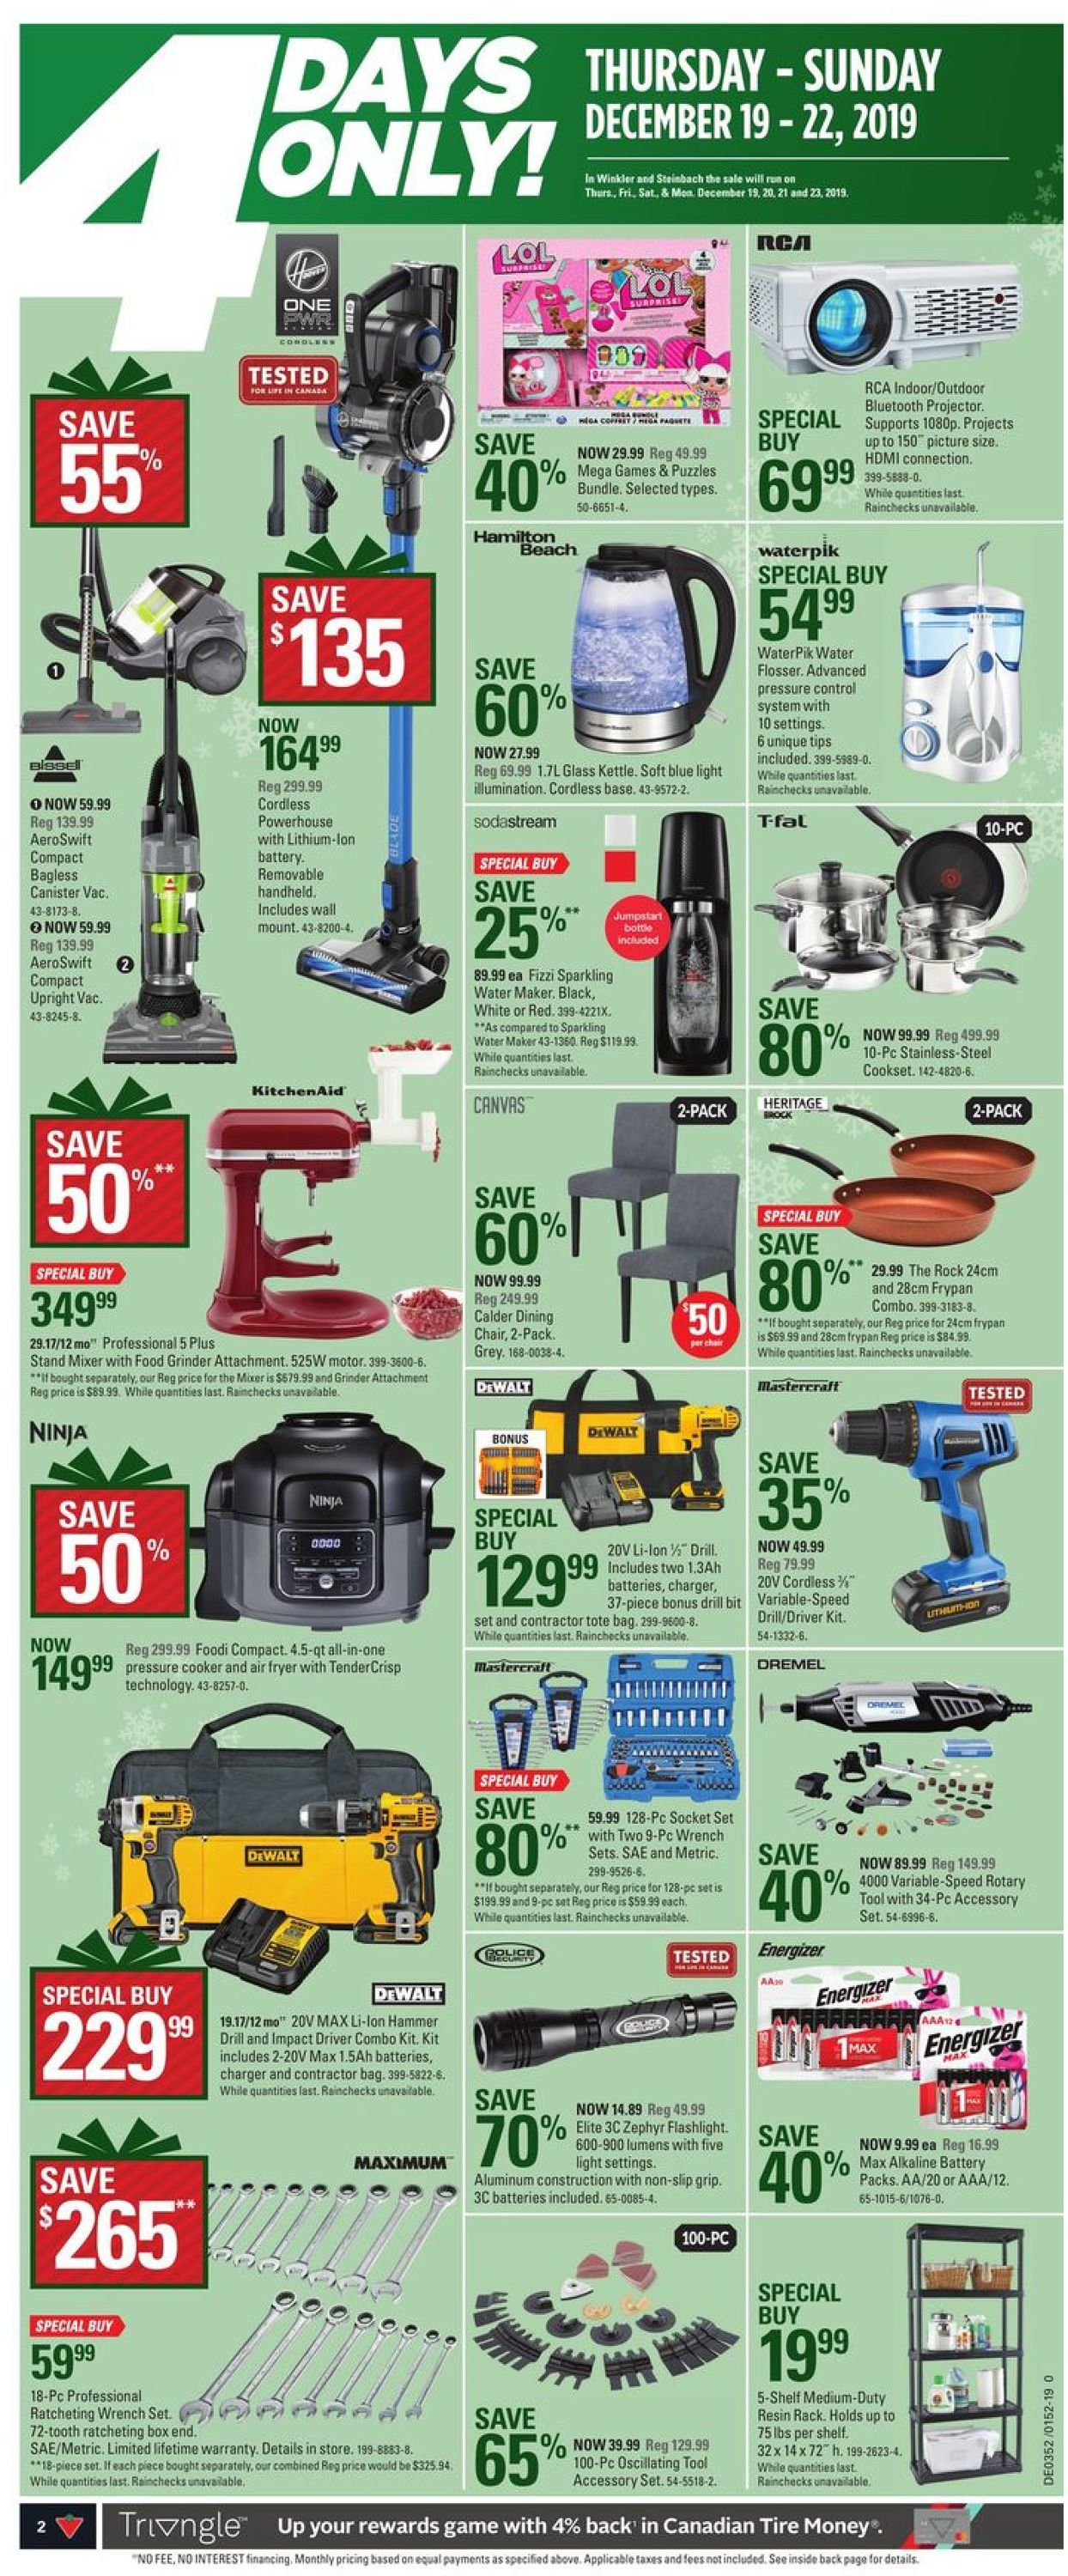 Canadian Tire Christmas Flyer 2019 Flyer - 12/19-12/26/2019 (Page 2)